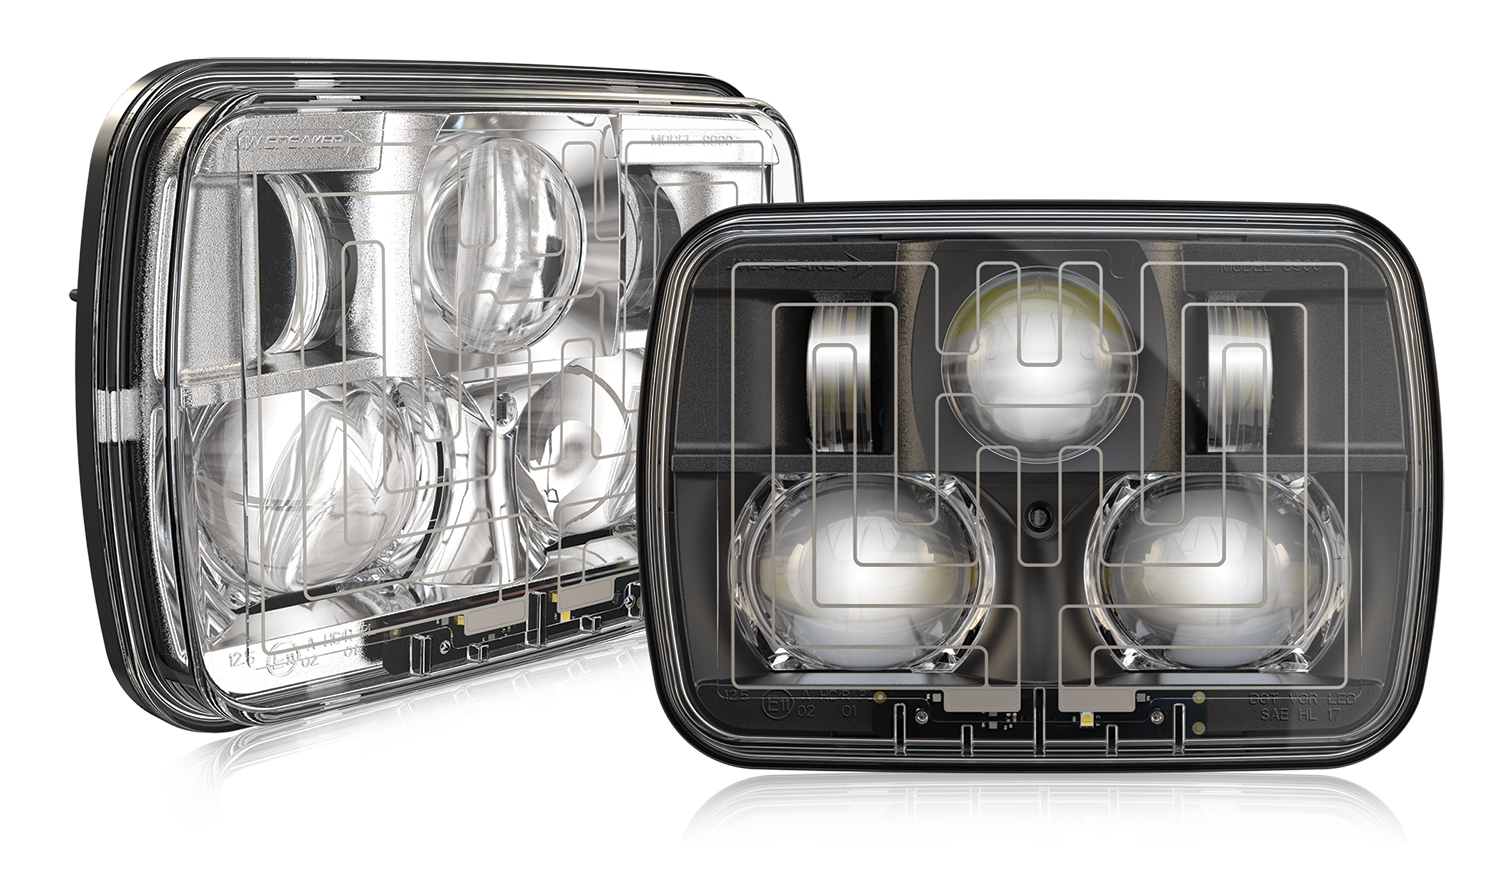 The Model 8910 Evolution 2 Heated LED headlights from J.W. Speaker feature SmartHeat technology to automatically de-ice lneses!